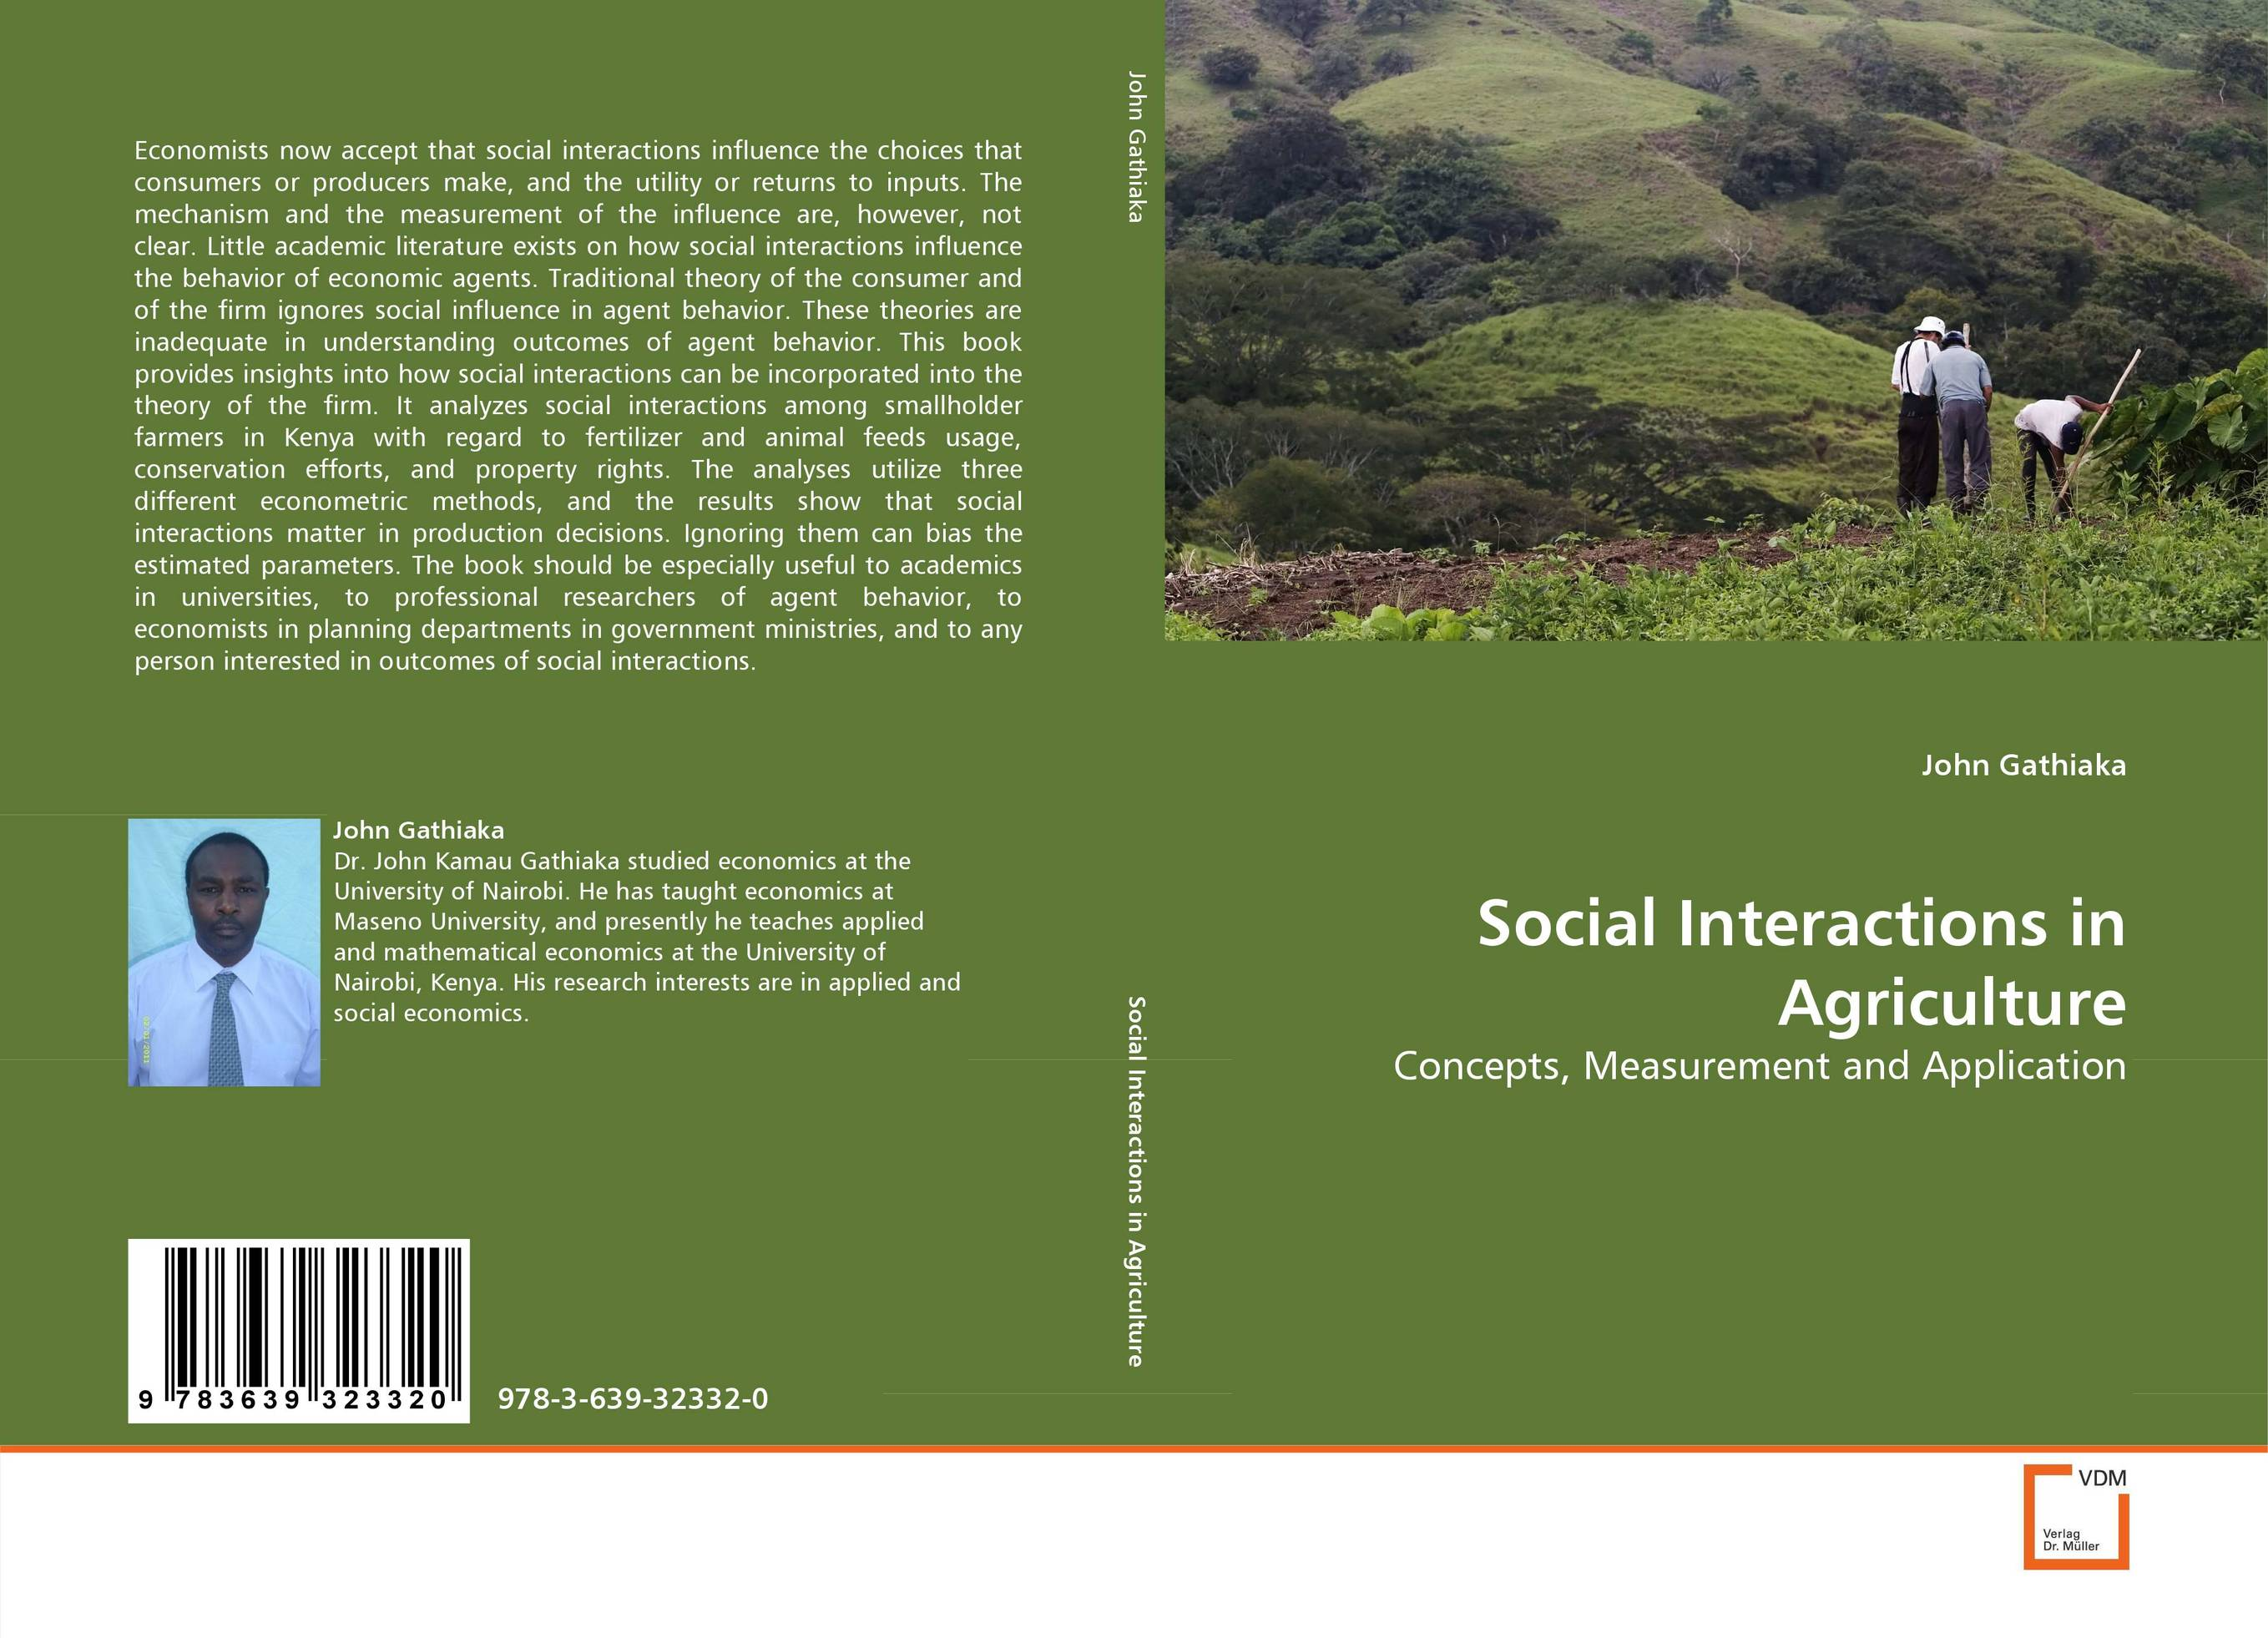 Social Interactions in Agriculture